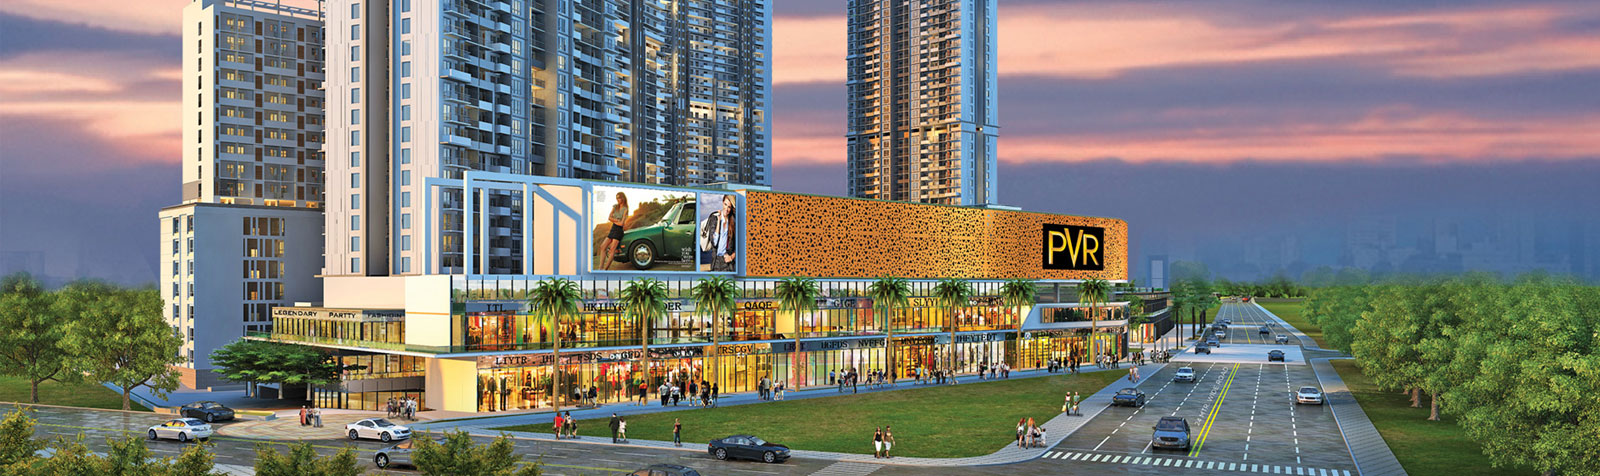 M3M Gurgaon Banner 65th avenue